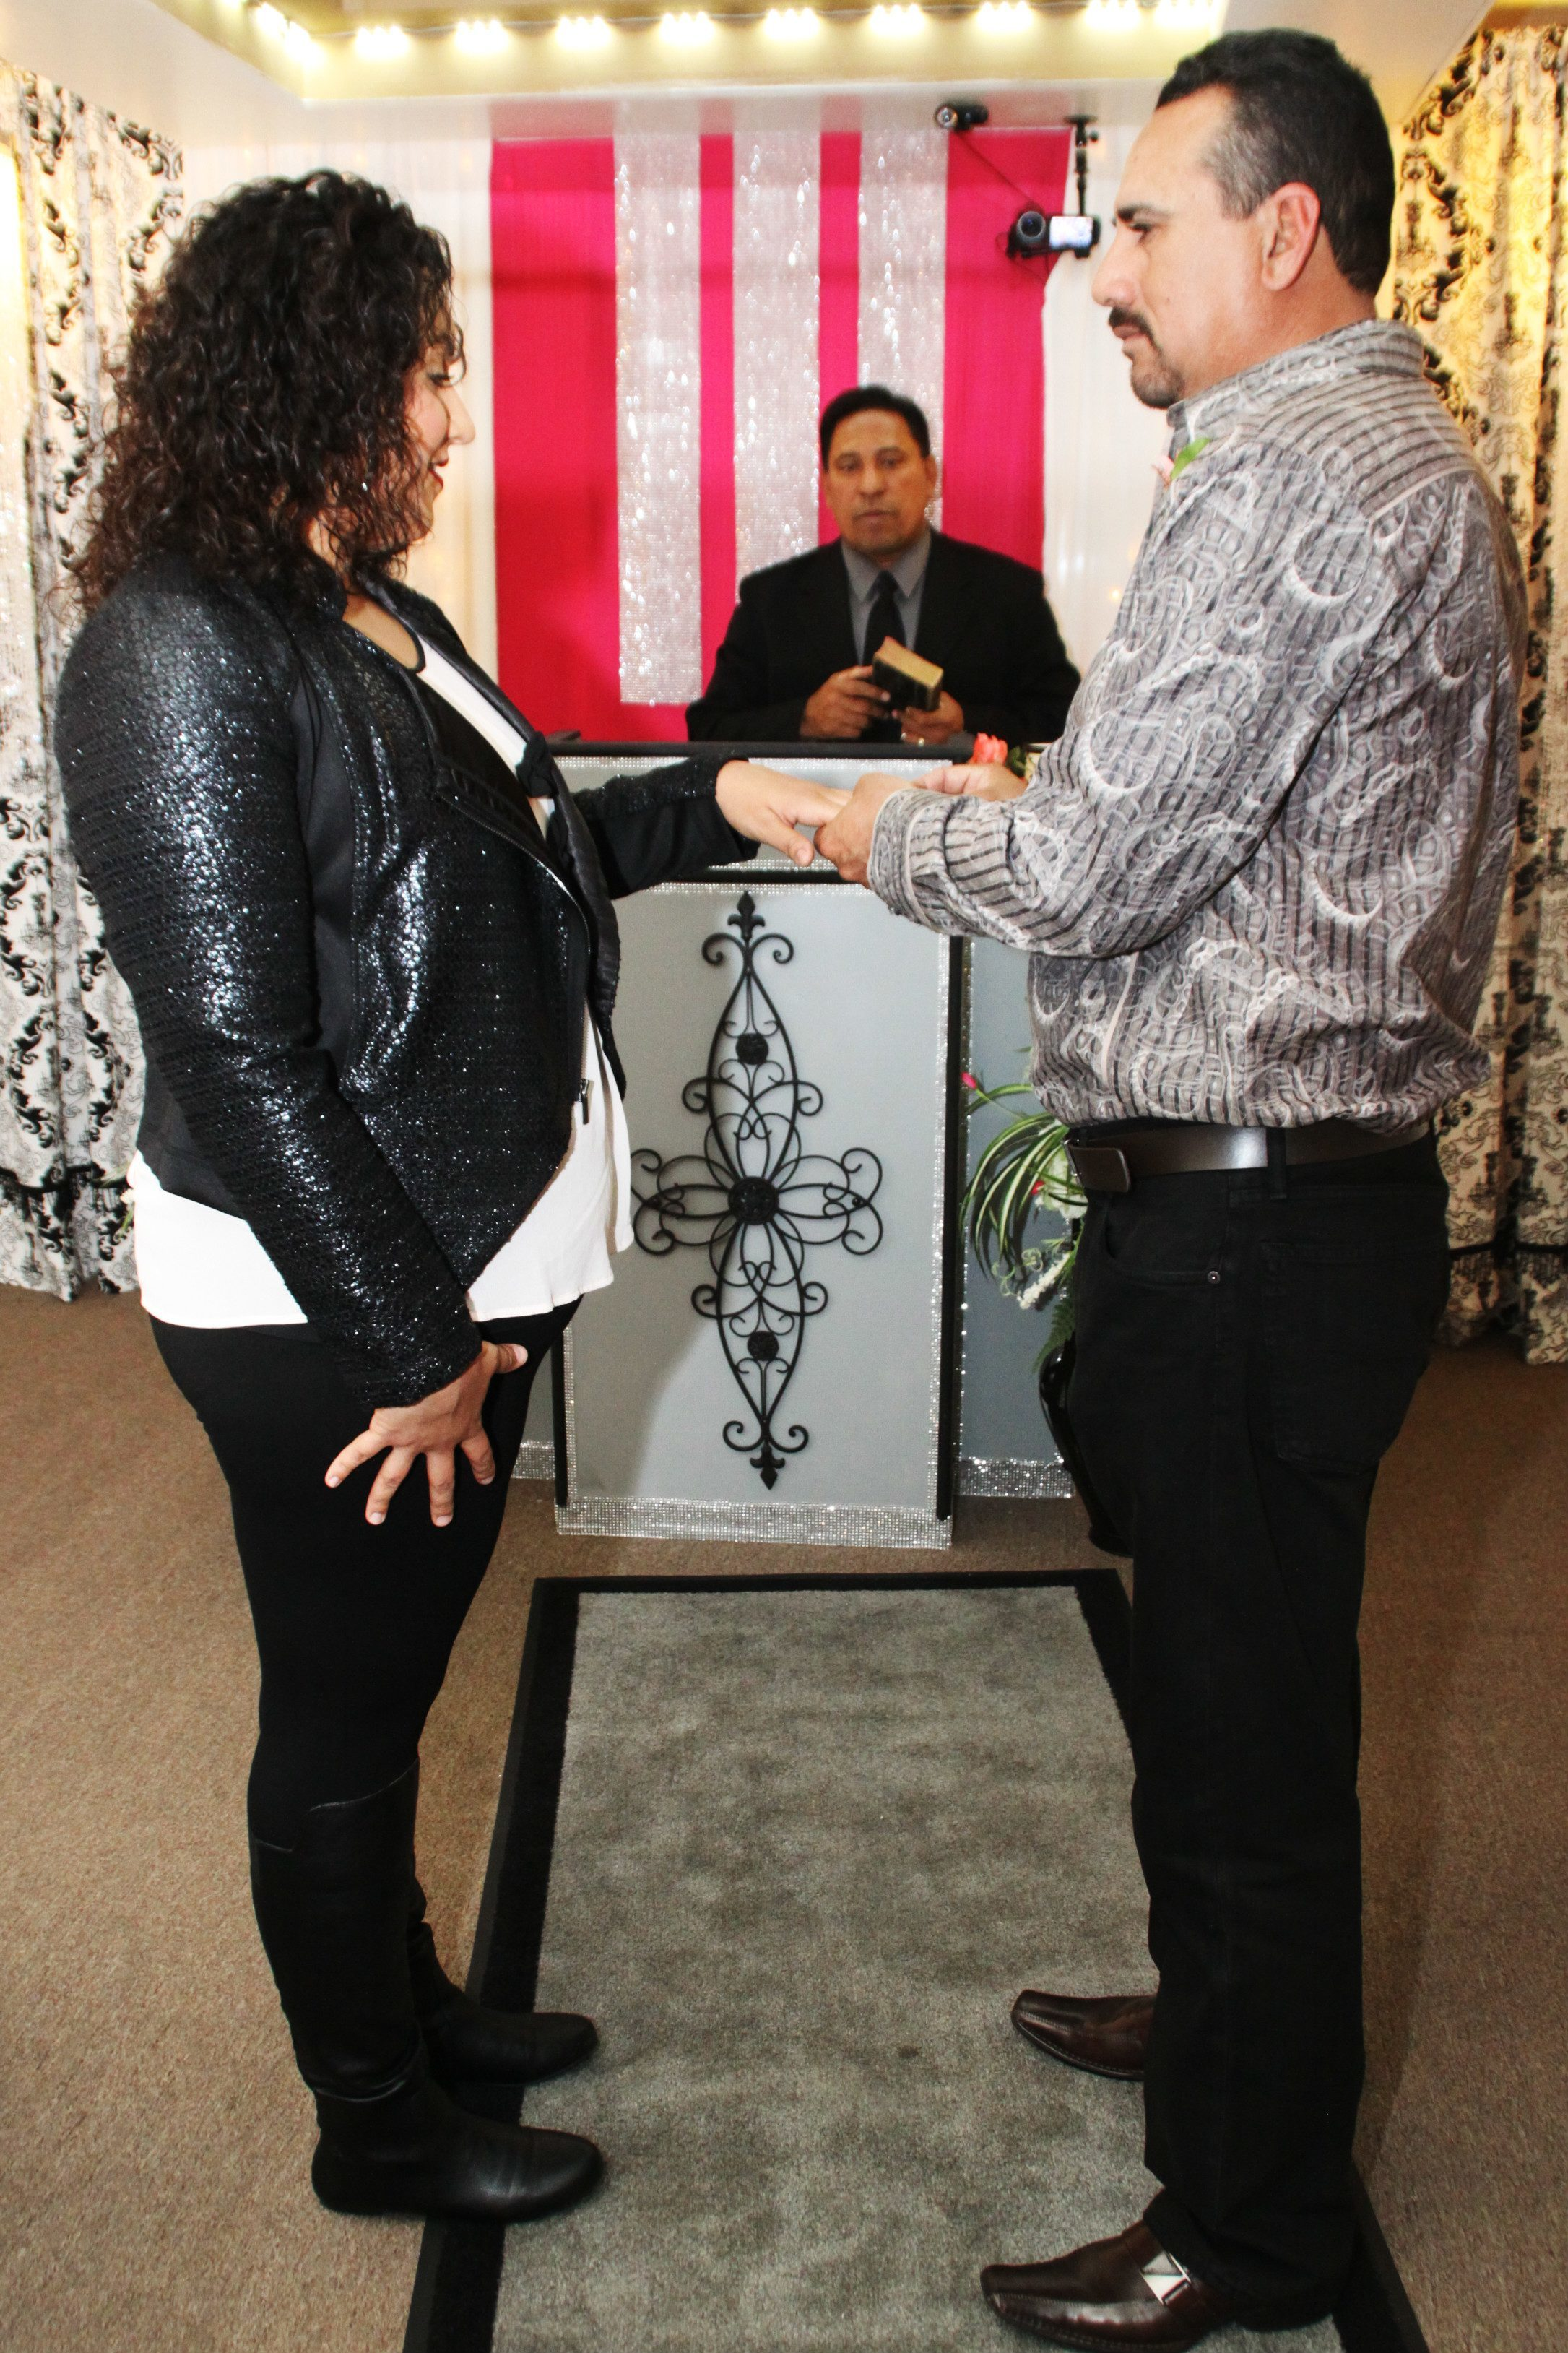 Ring exchange between bride and groom, minister in background